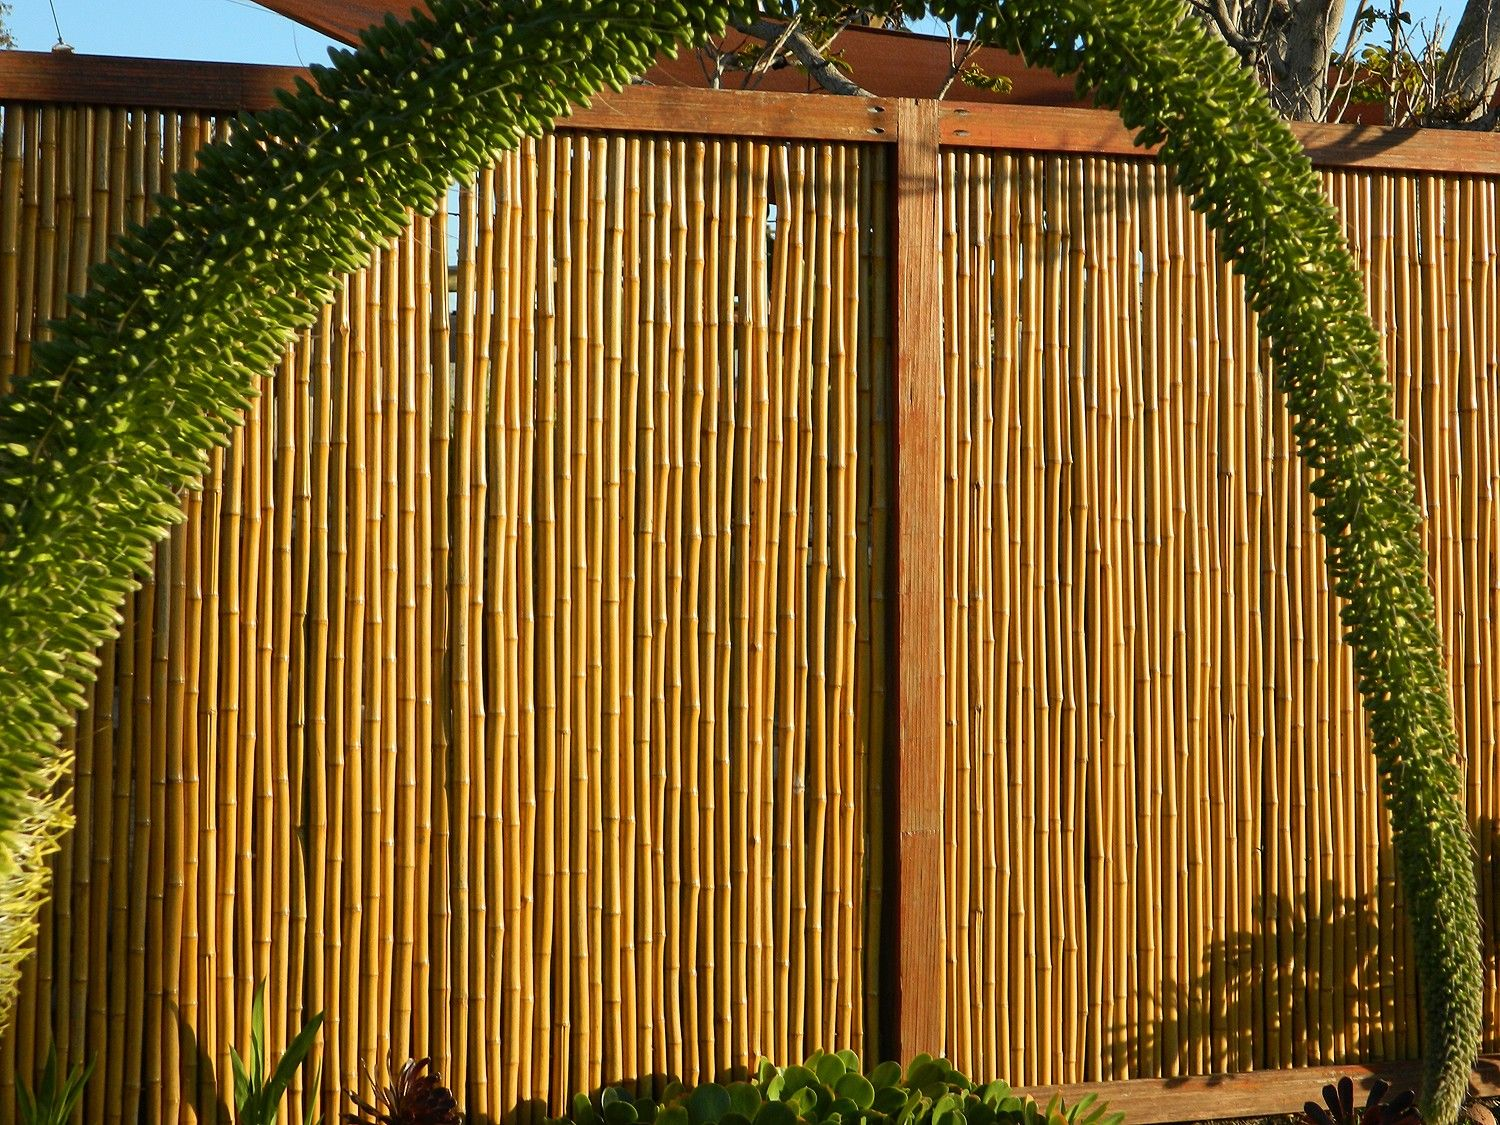 Lowes Backyard Design backyard play area ideas Best Bamboo Fencing For Garden And Outdoor Design Bamboo Sticks Lowes With Bamboo Fencing For Backyard Fencing Ideas Also Garden Landscape And Outdoor